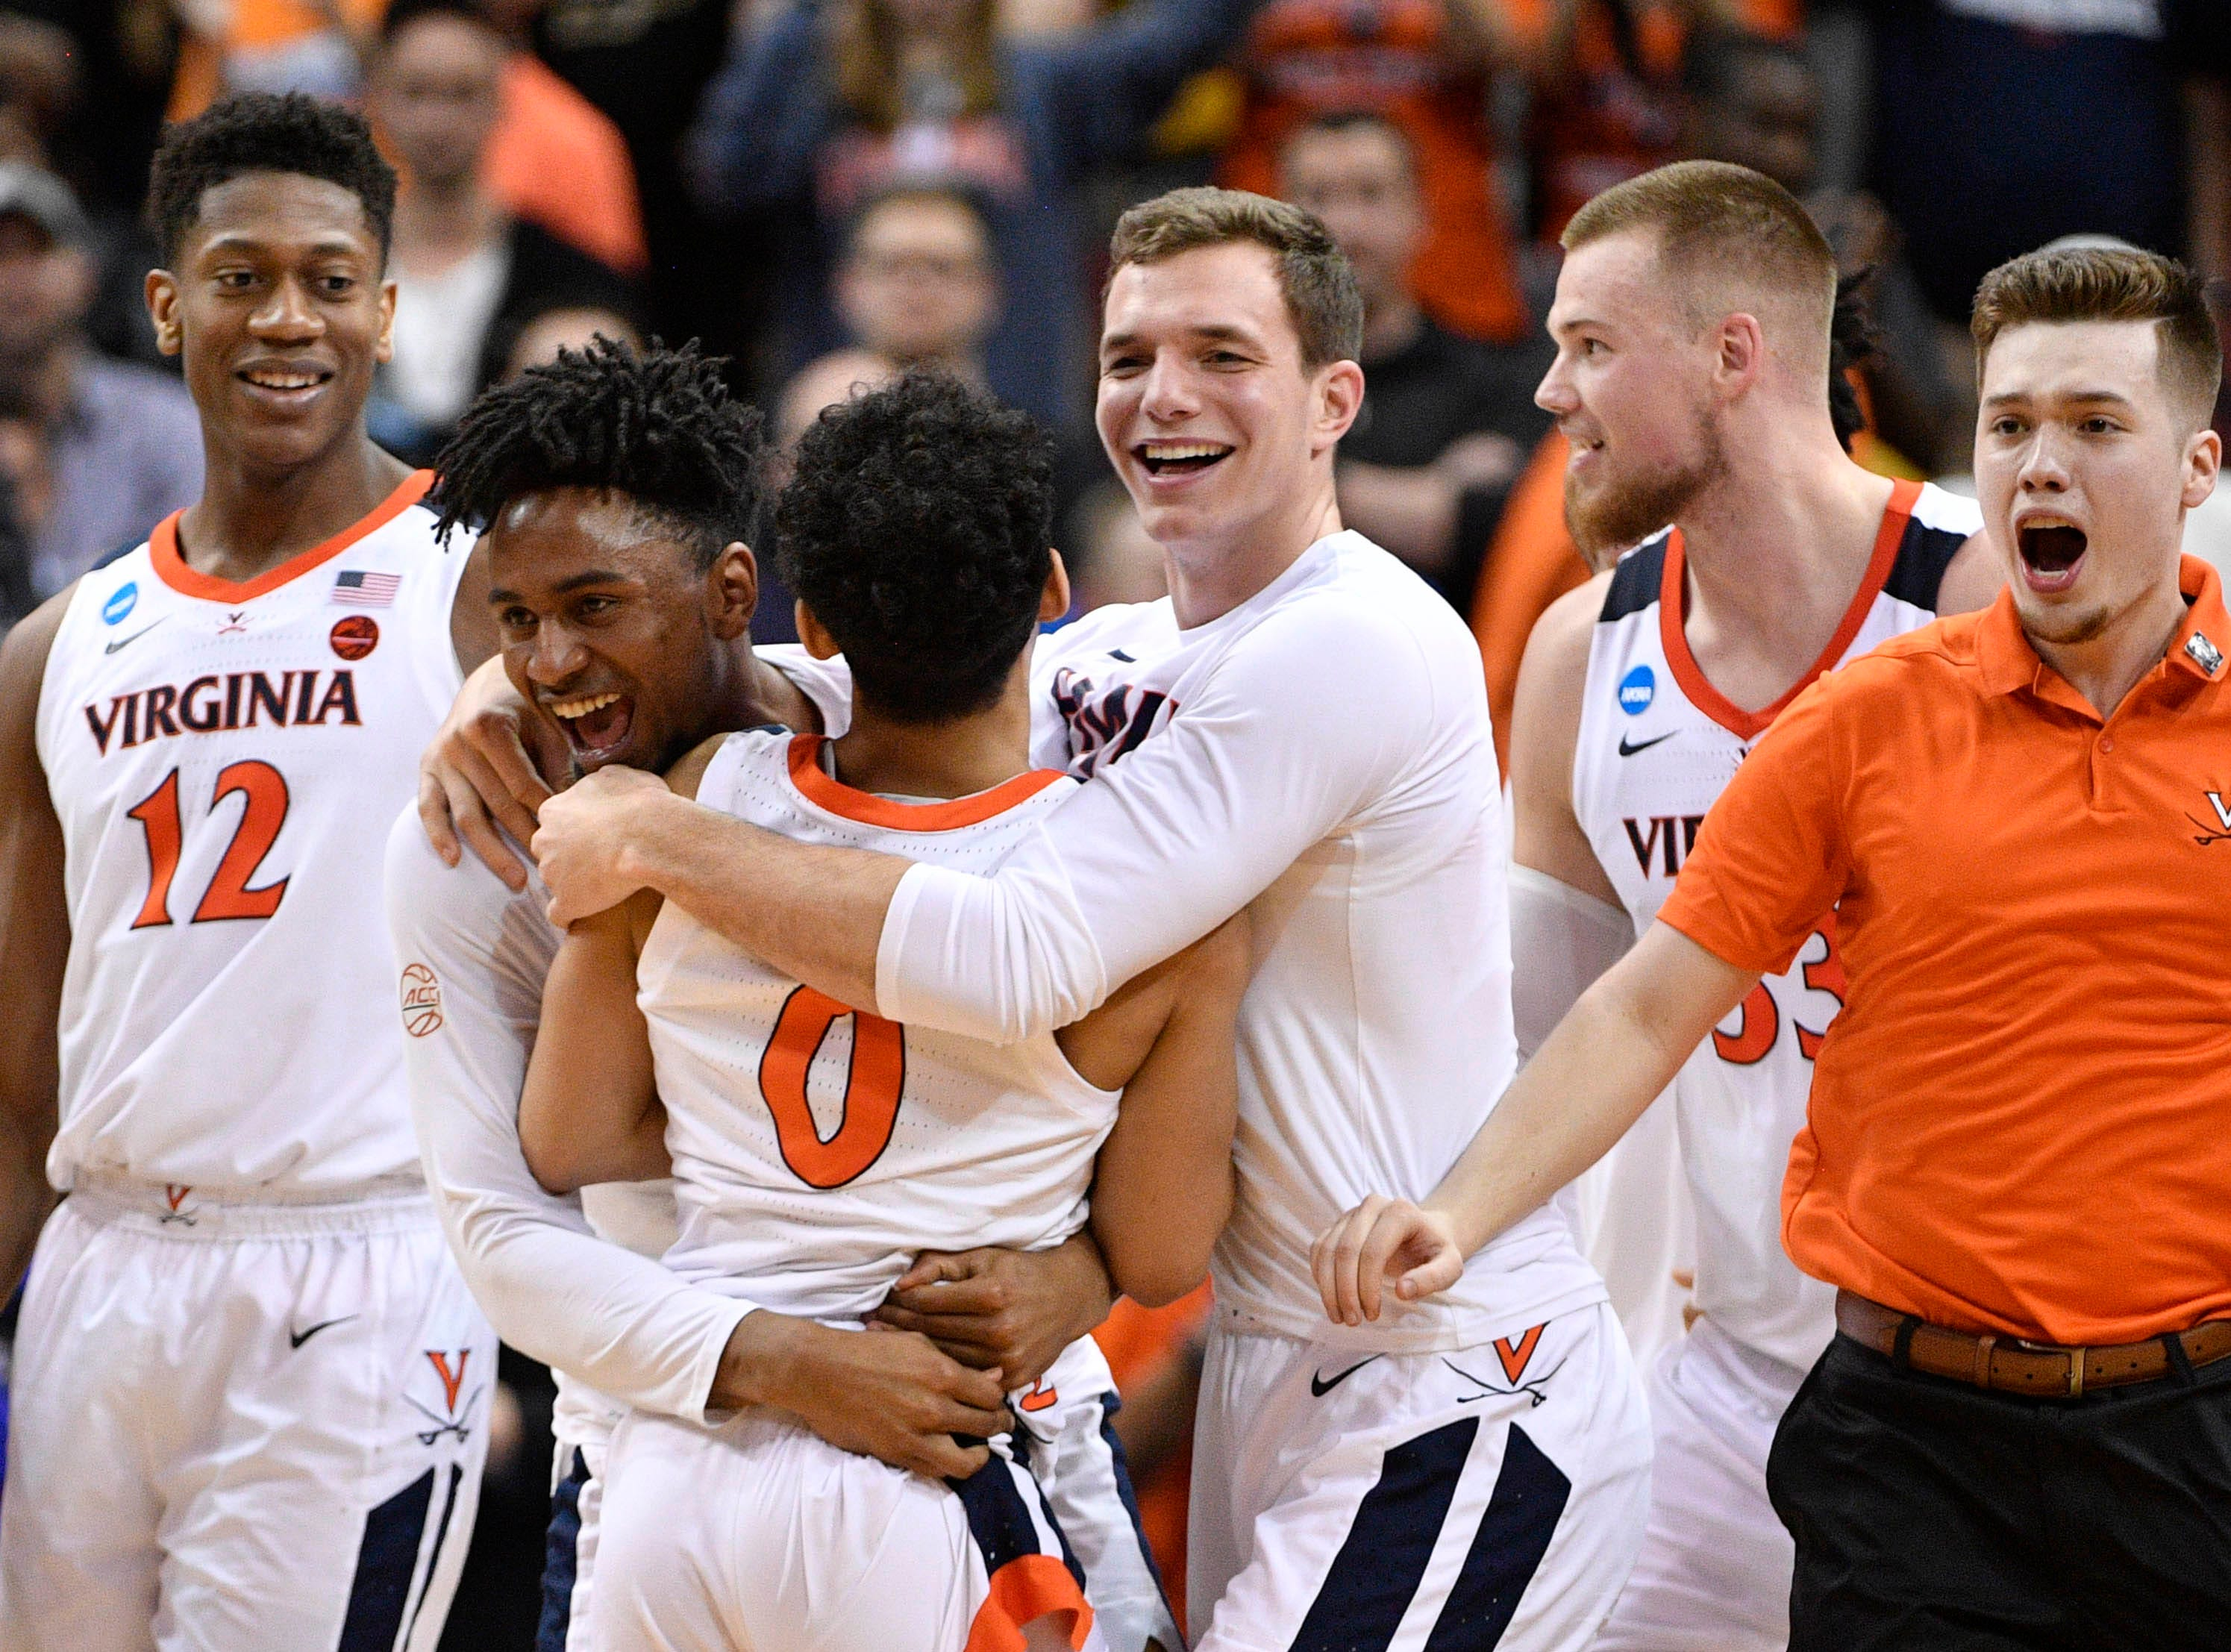 Mar 30, 2019; Louisville, KY, United States; Virginia Cavaliers guard Kihei Clark (0) and teammates celebrate the win over Purdue Boilermakers in overtime in the championship game of the south regional of the 2019 NCAA Tournament at KFC Yum Center. Mandatory Credit: Jamie Rhodes-USA TODAY Sports